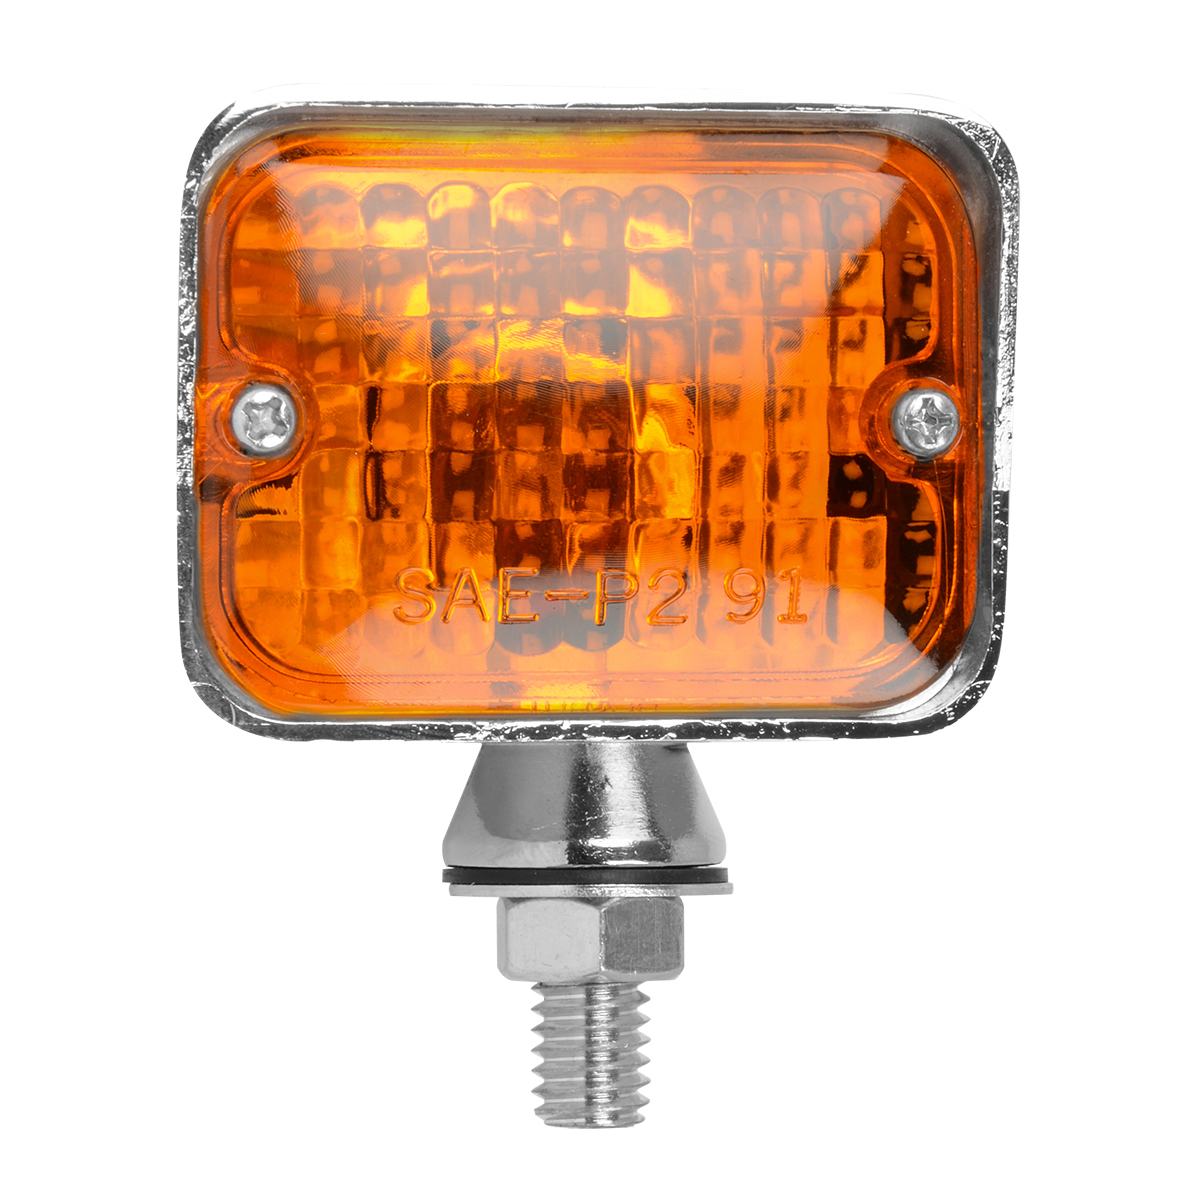 #80910 Large Double Filament Amber Light